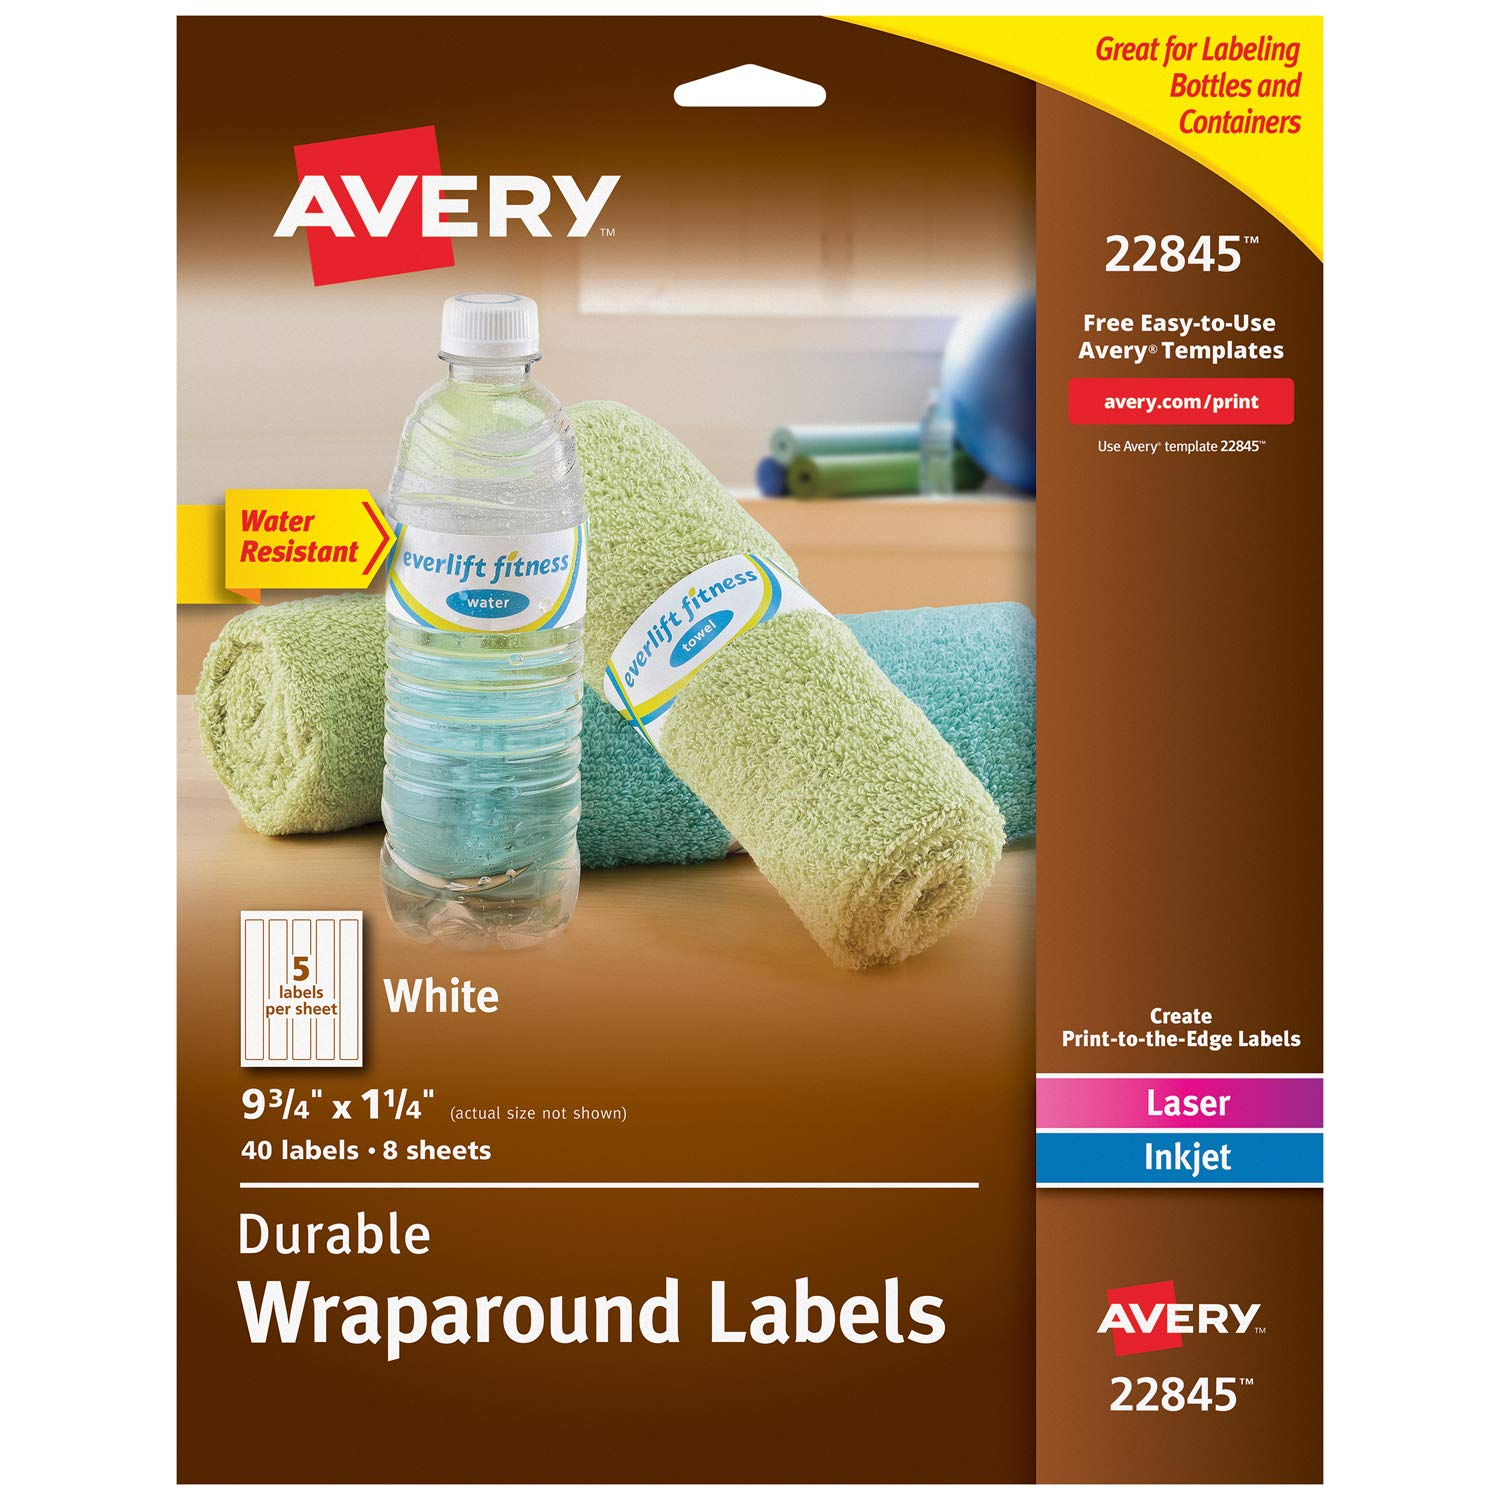 "Avery Wraparound Water Bottle Labels for Laser & Inkjet Printers, 1.25"" x 9.75"", 40 Labels (22845)"